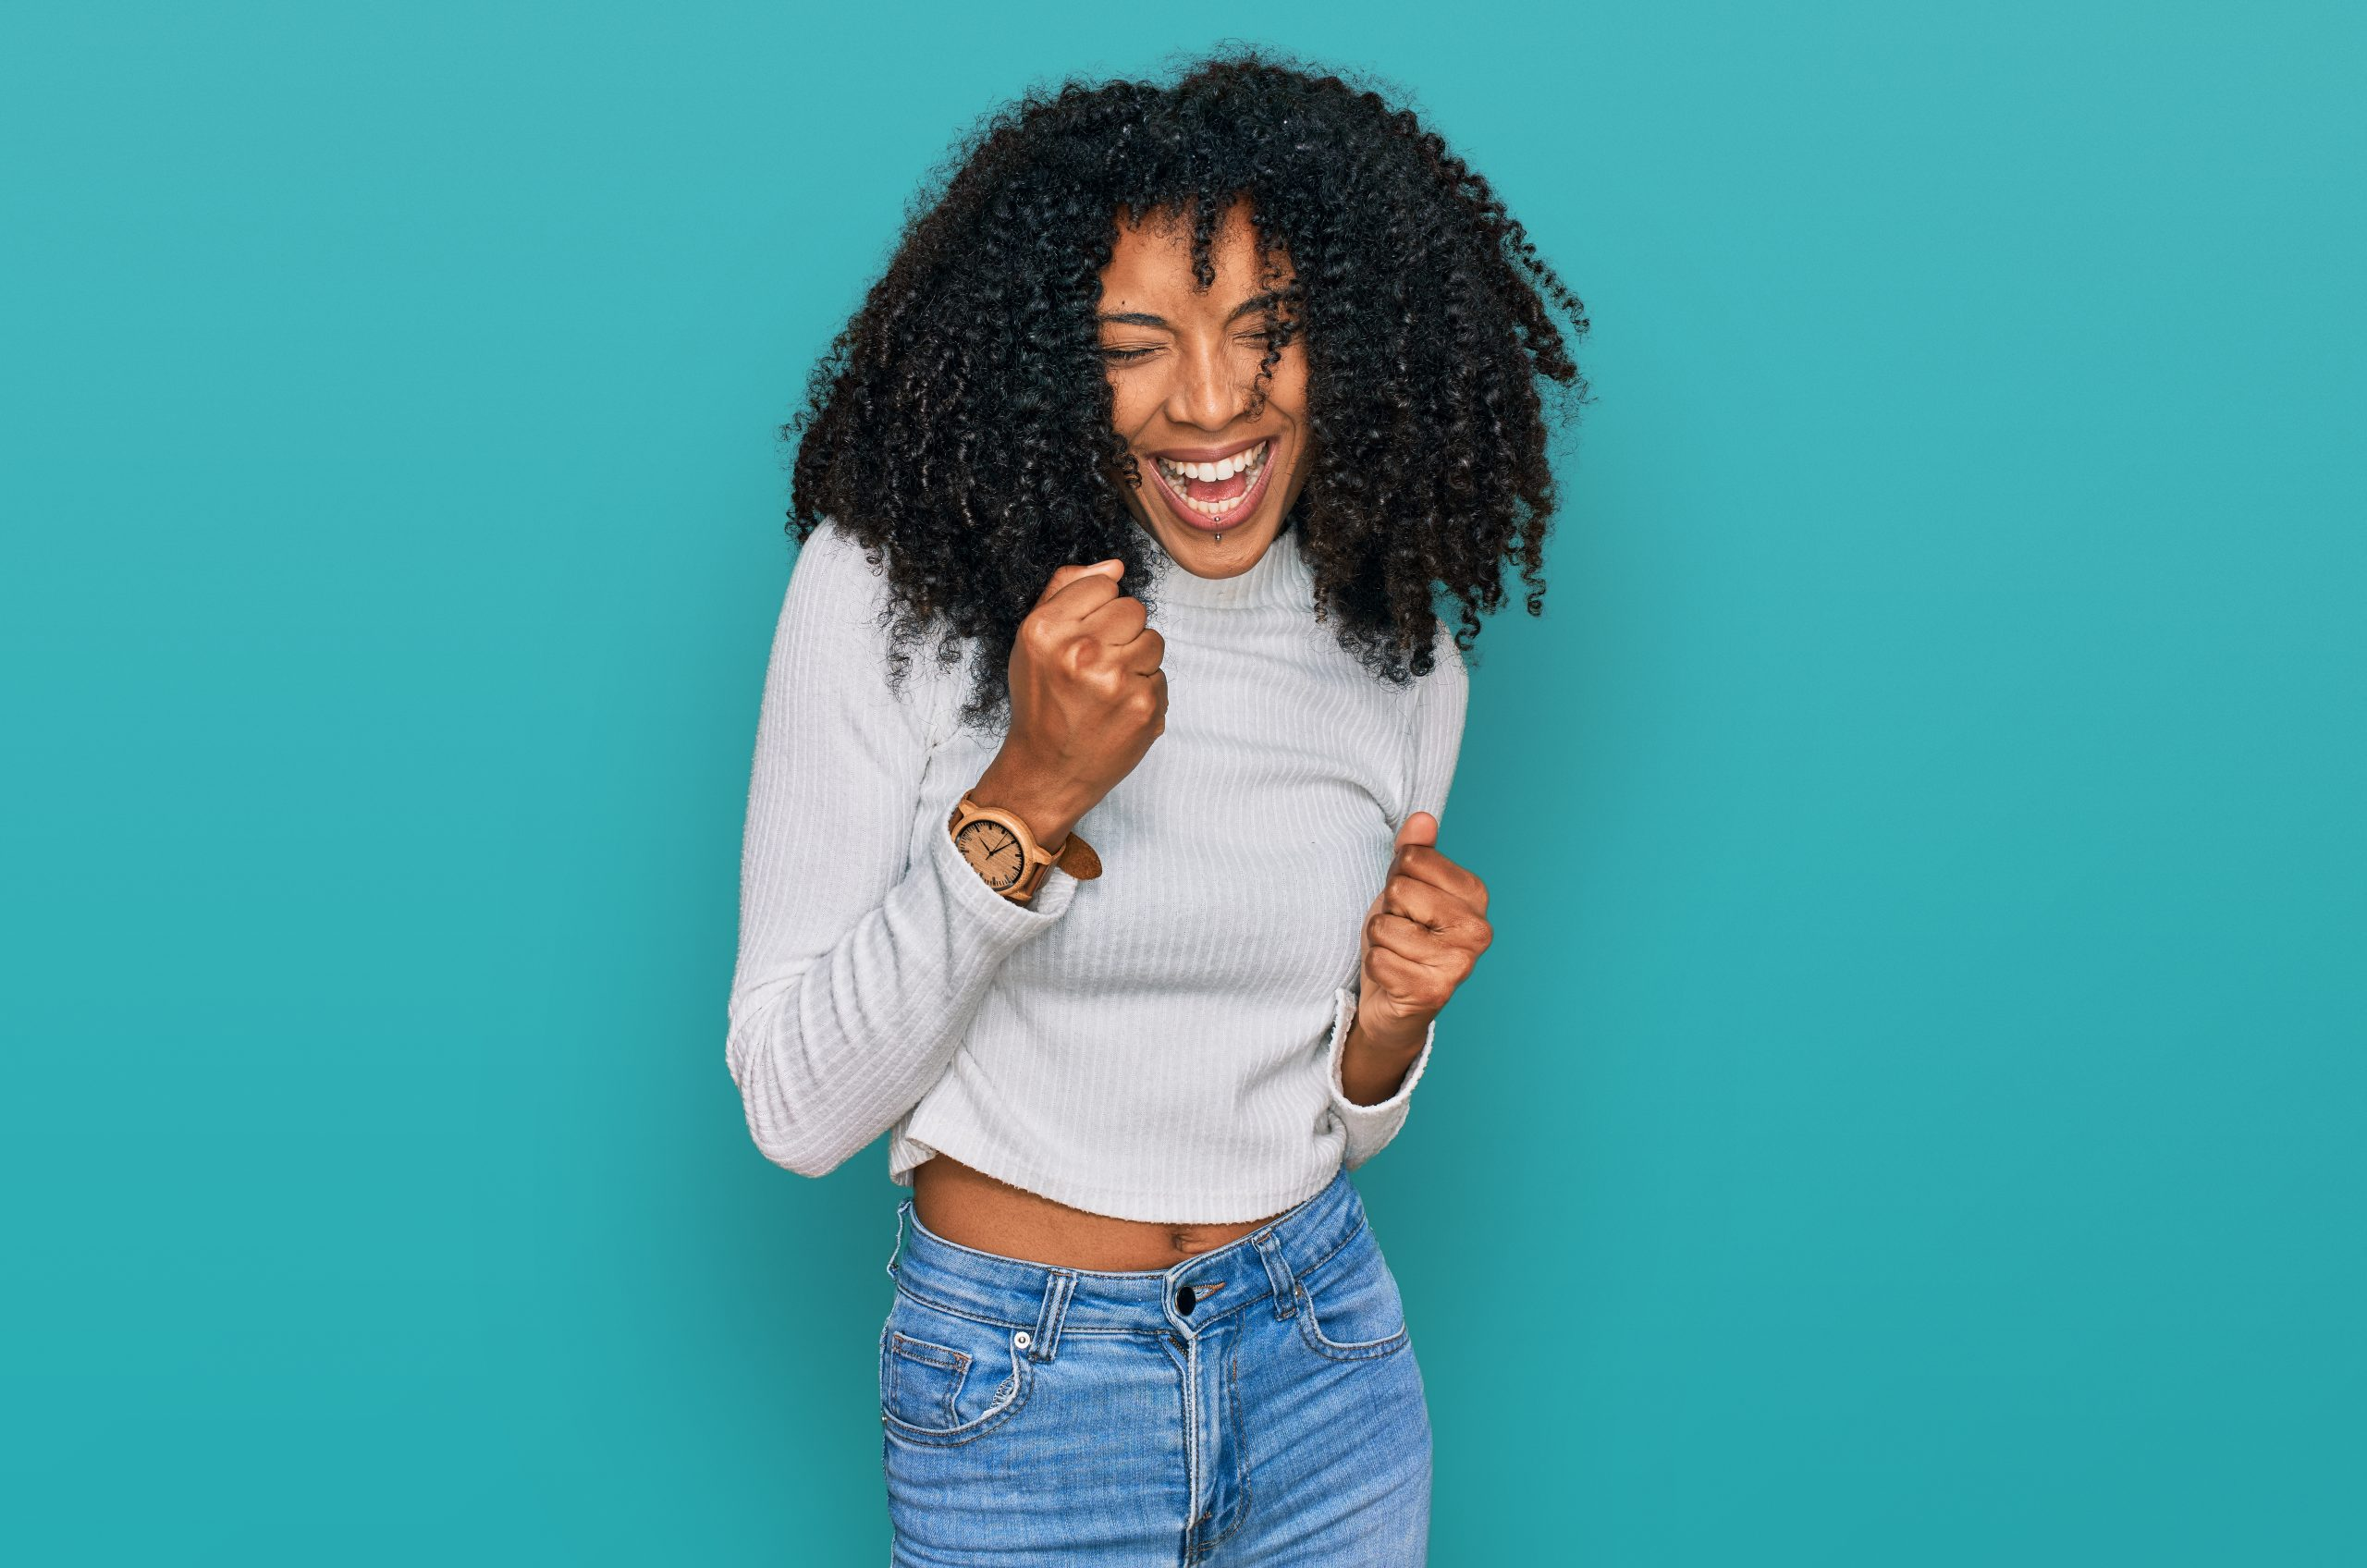 Young african american girl wearing casual clothes celebrating surprised and amazed for success with arms raised and eyes closed. winner concept.